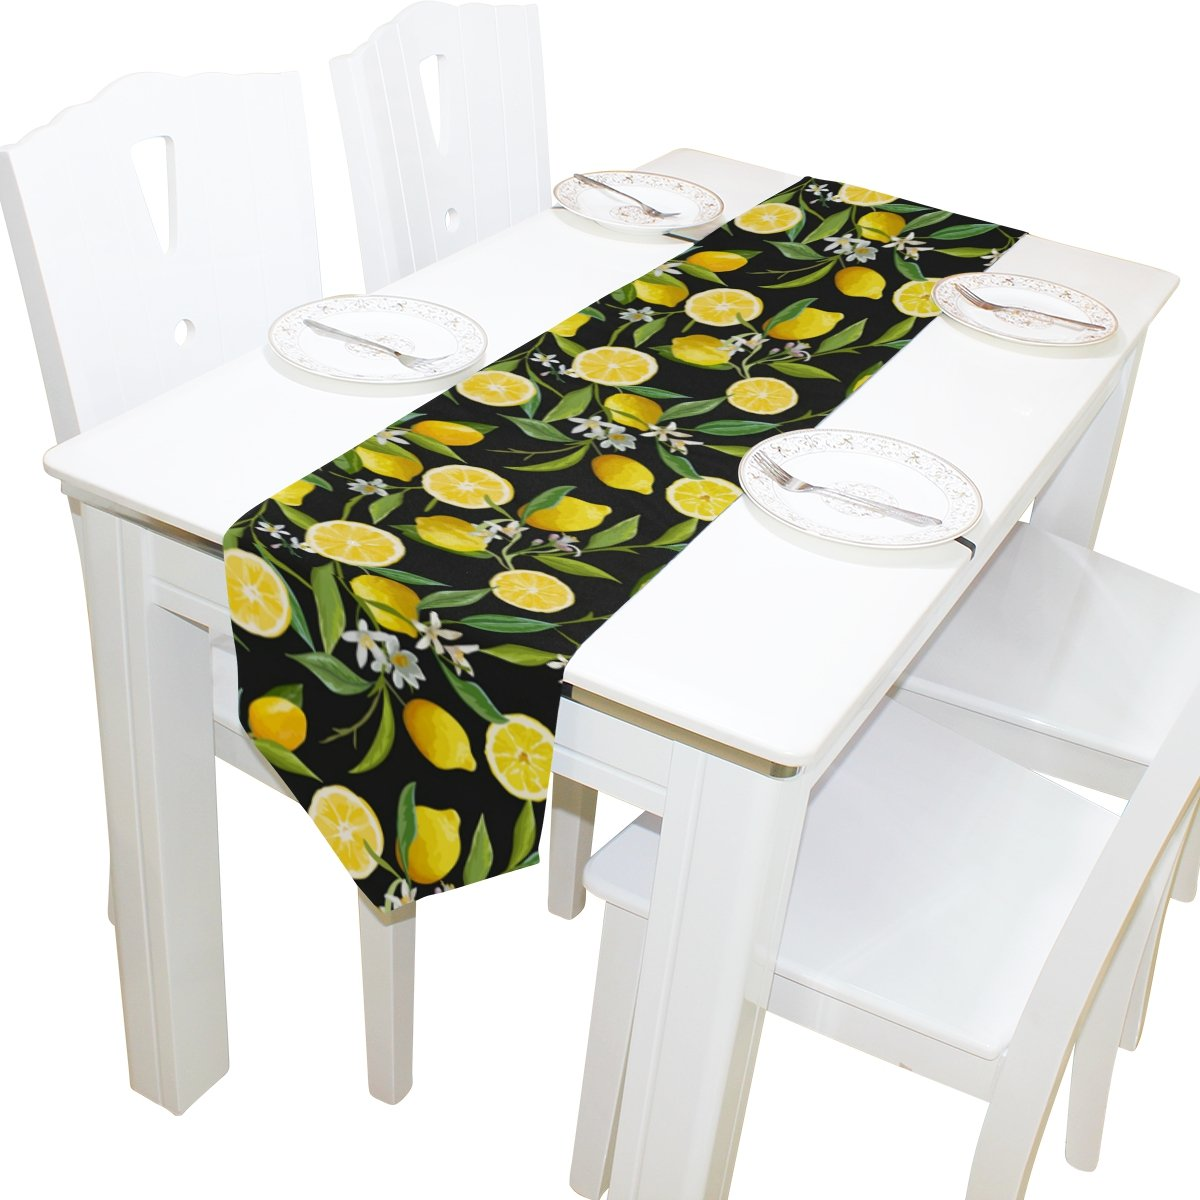 ALAZA Table Runner Home Decor, Stylish Yellow Lemon with Floral Table Cloth Runner Coffee Mat for Wedding Party Banquet Decoration 13 x 90 inches